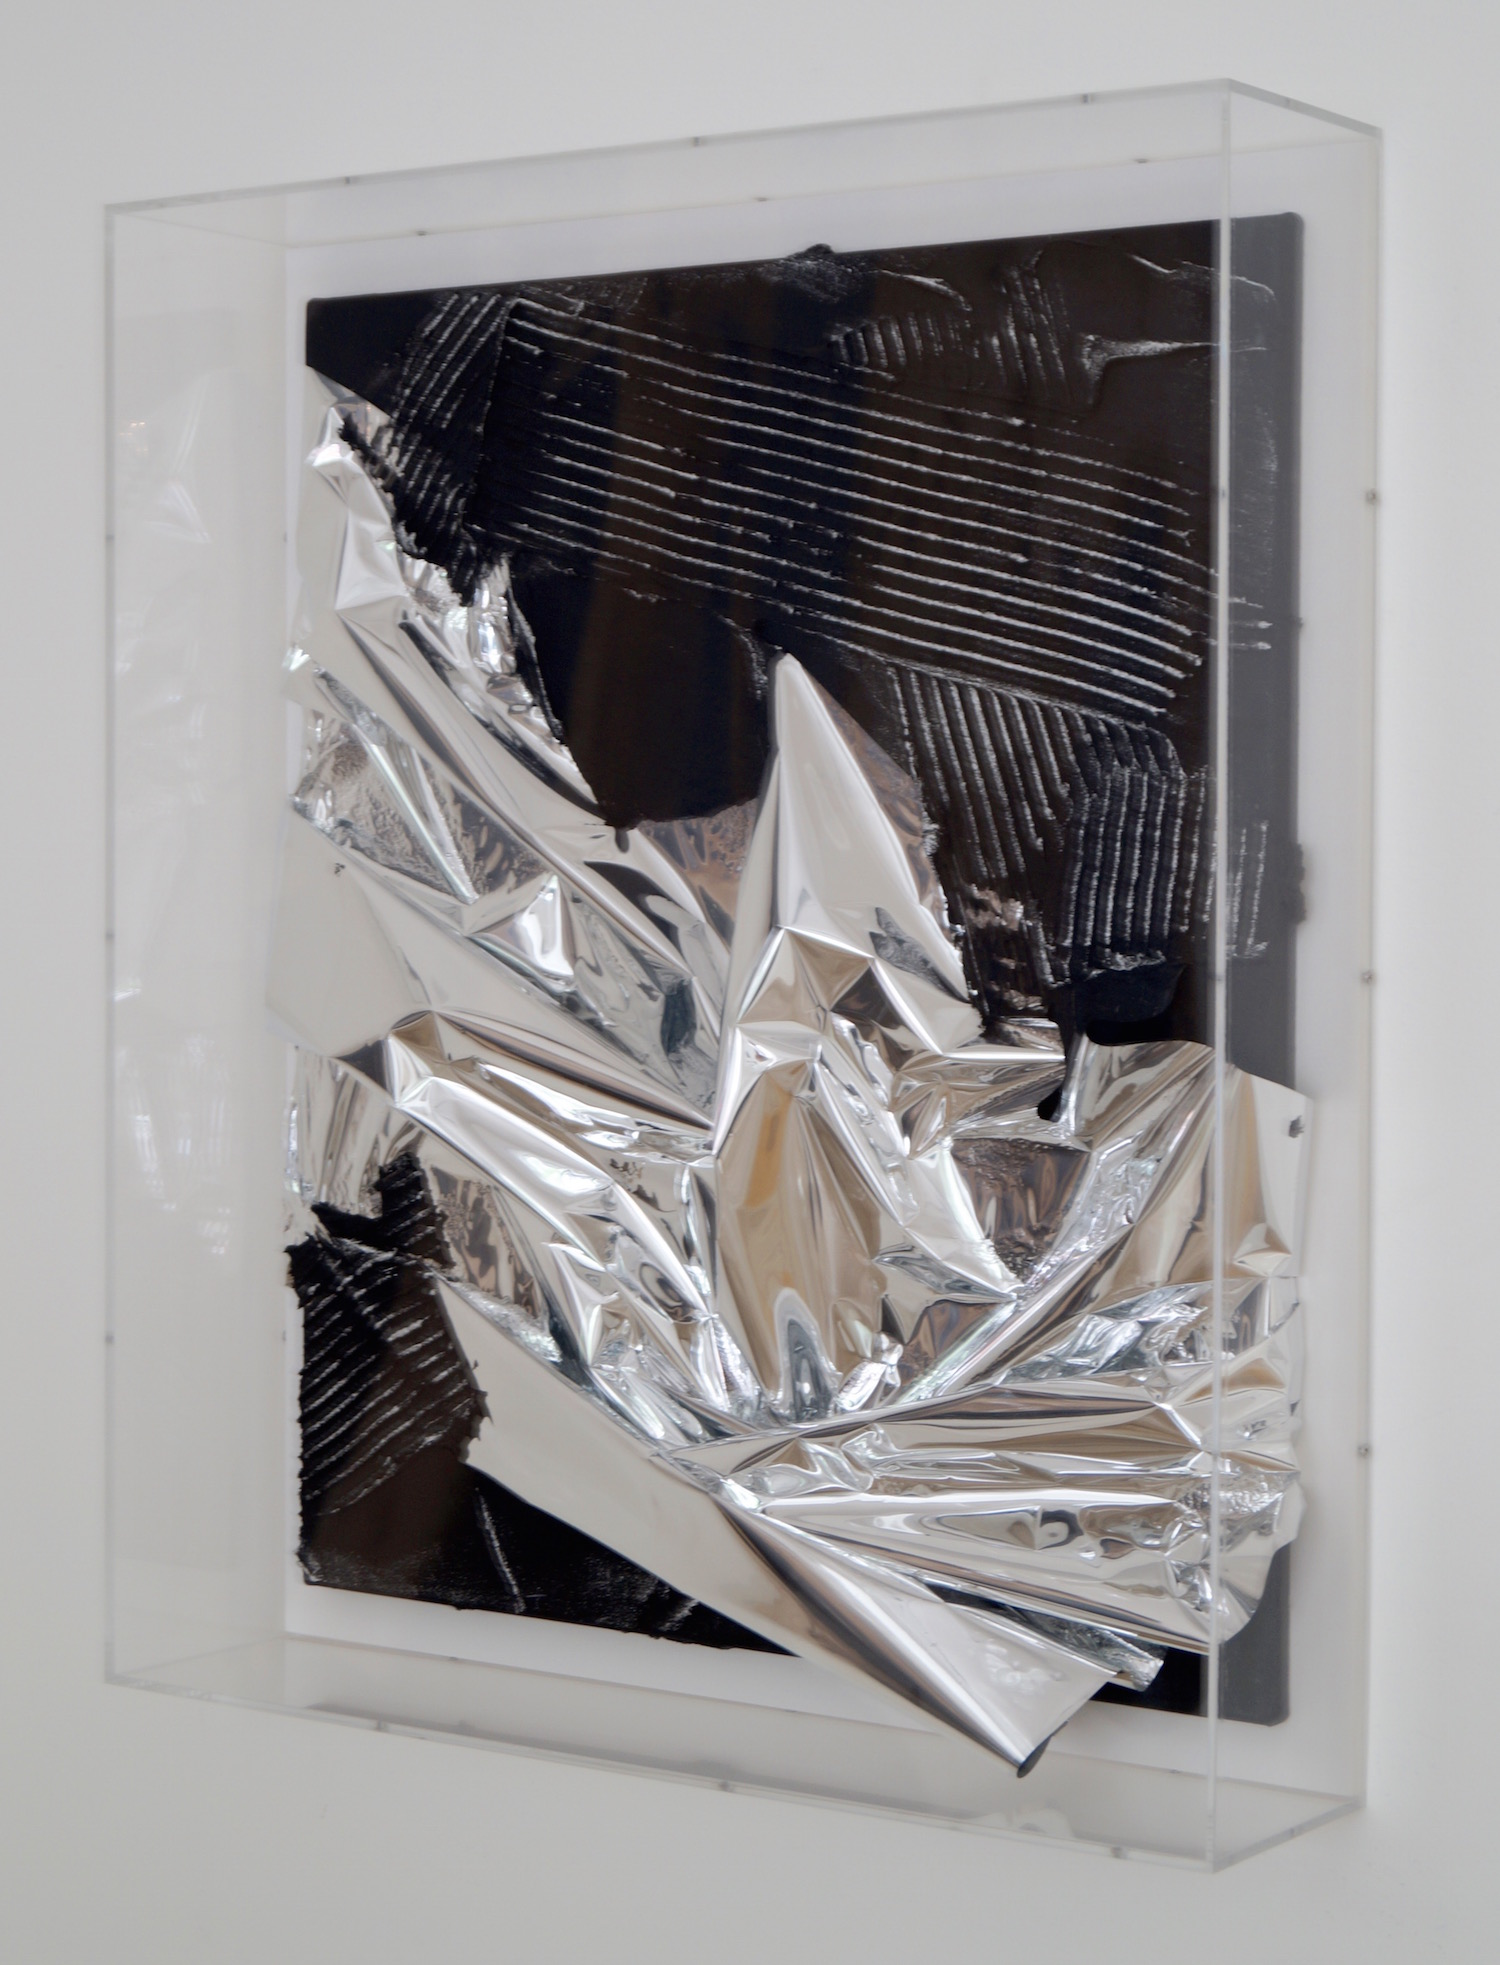 Anselm Reyle Untitled, 2007 mixed media on canvas in acrylic box 74 x 63 x 14 cm   29 1/4 x 24 3/4 x 5 1/2 in